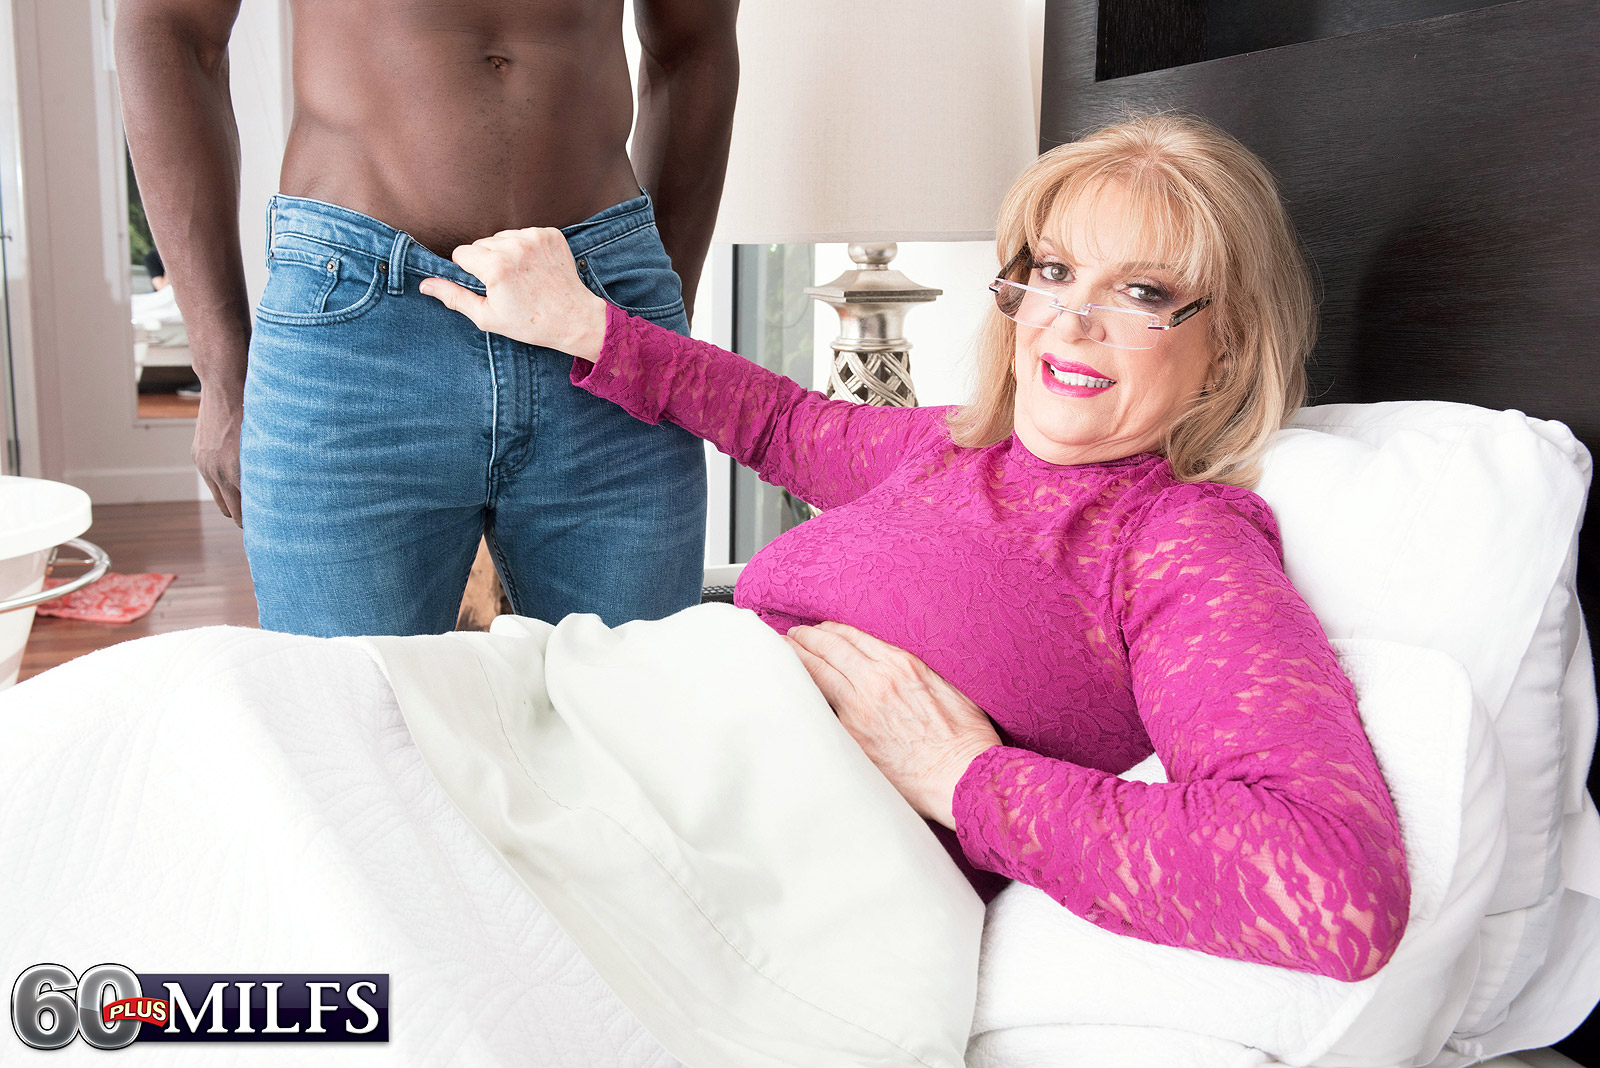 60 Plus Gilfs a 70-year-old gilf and a big, young, black cock - crystal